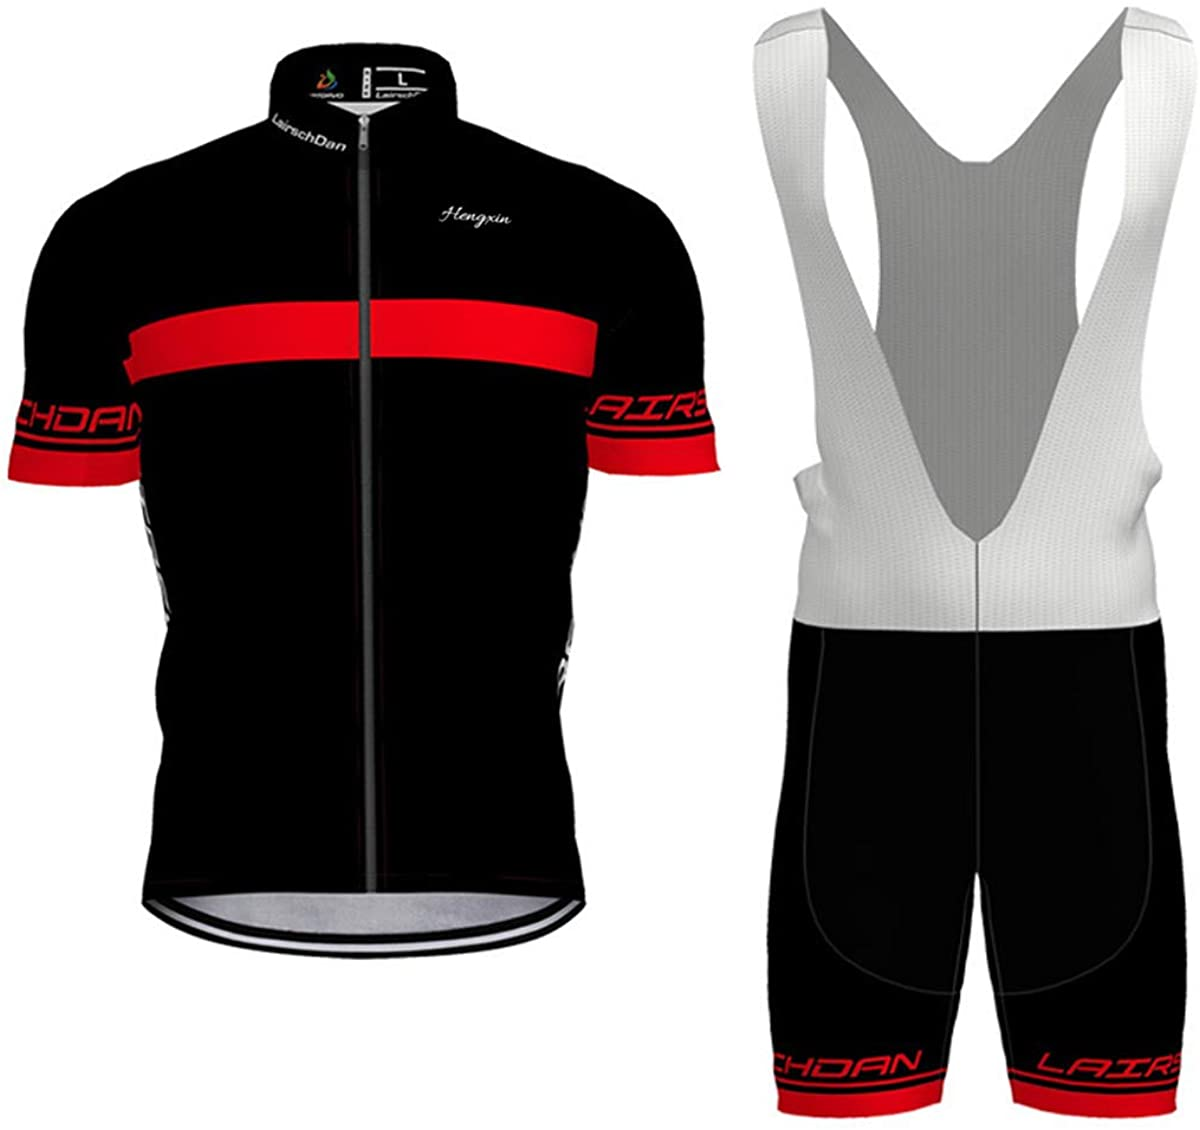 Mens Classic Cycling Jersey Race fit 9D Shor Padded online Free shipping shop Bib with Gel